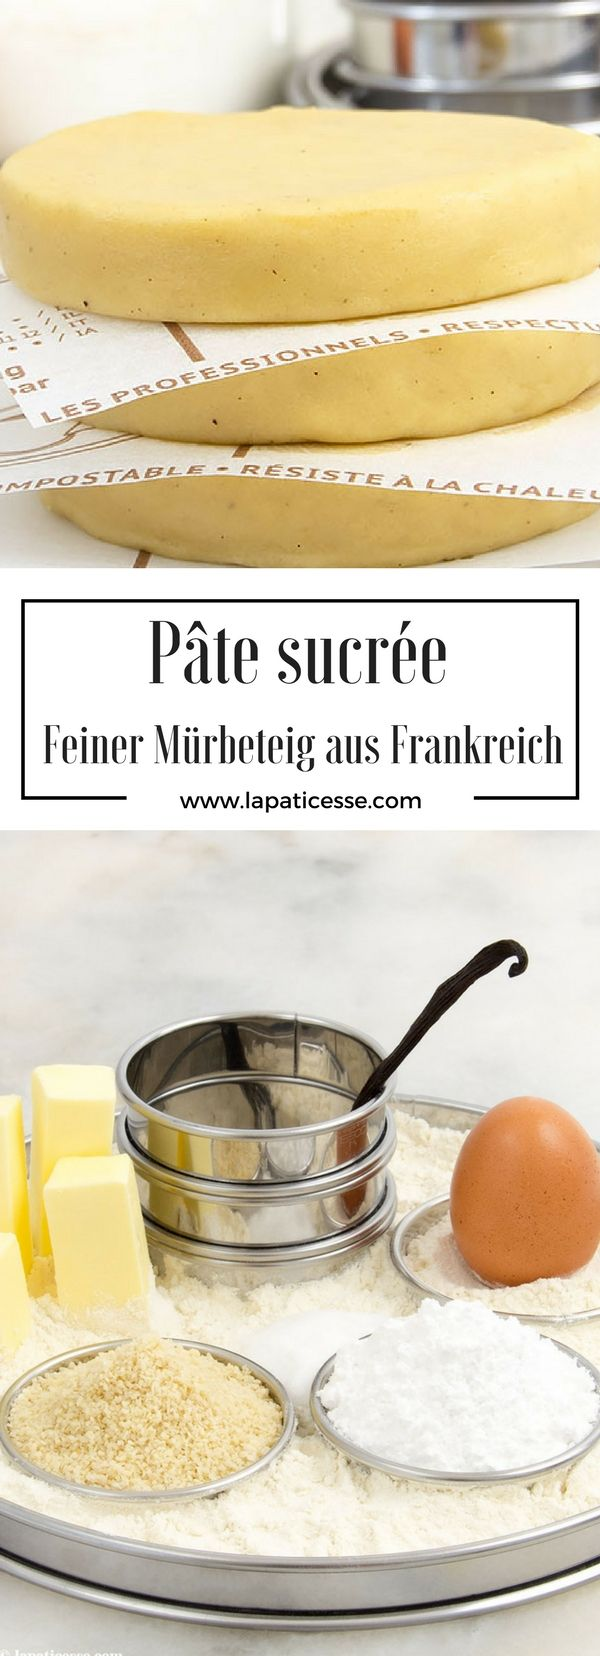 Rezept & Grundrezept für Pâte sucrée. Feiner französischer Mürbeteig mit Vanille und Mandeln * Recipe for french Shortcrust Pastry with Almonds and Vanilla * Recette de pâte sucrée. Recette de base * Made by La Pâticesse